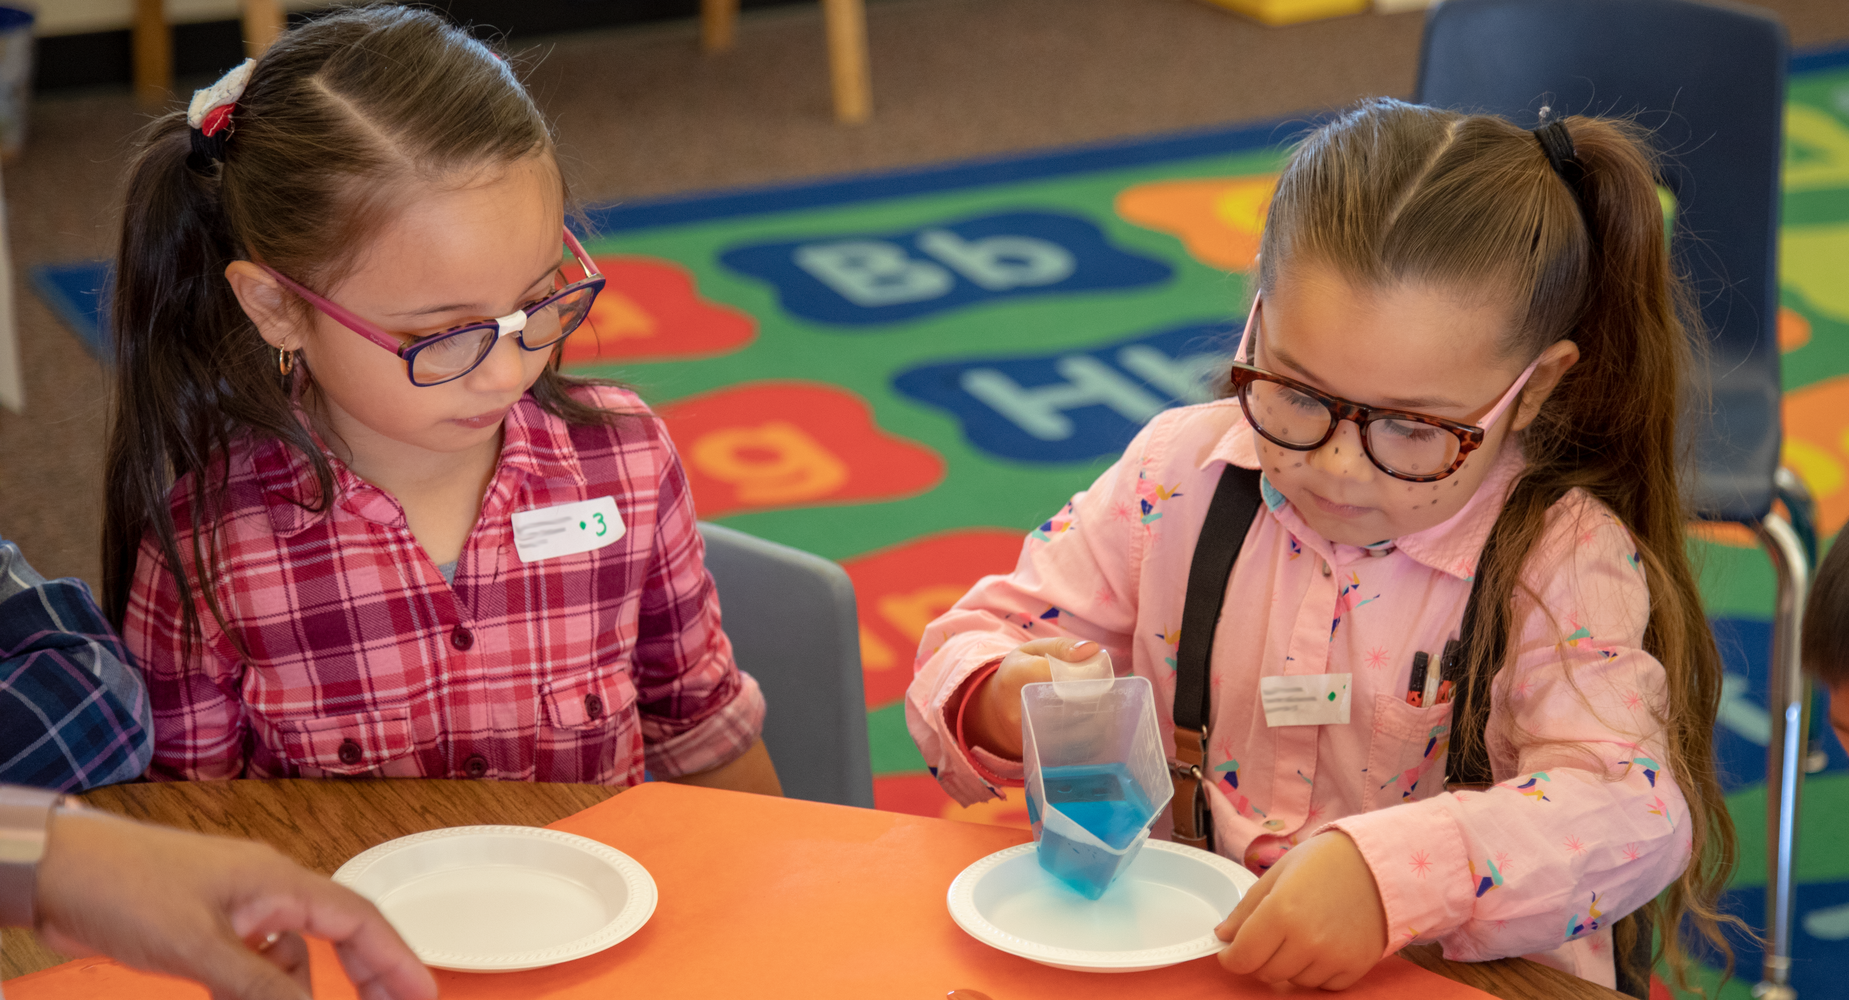 Two students conducting a science experiment